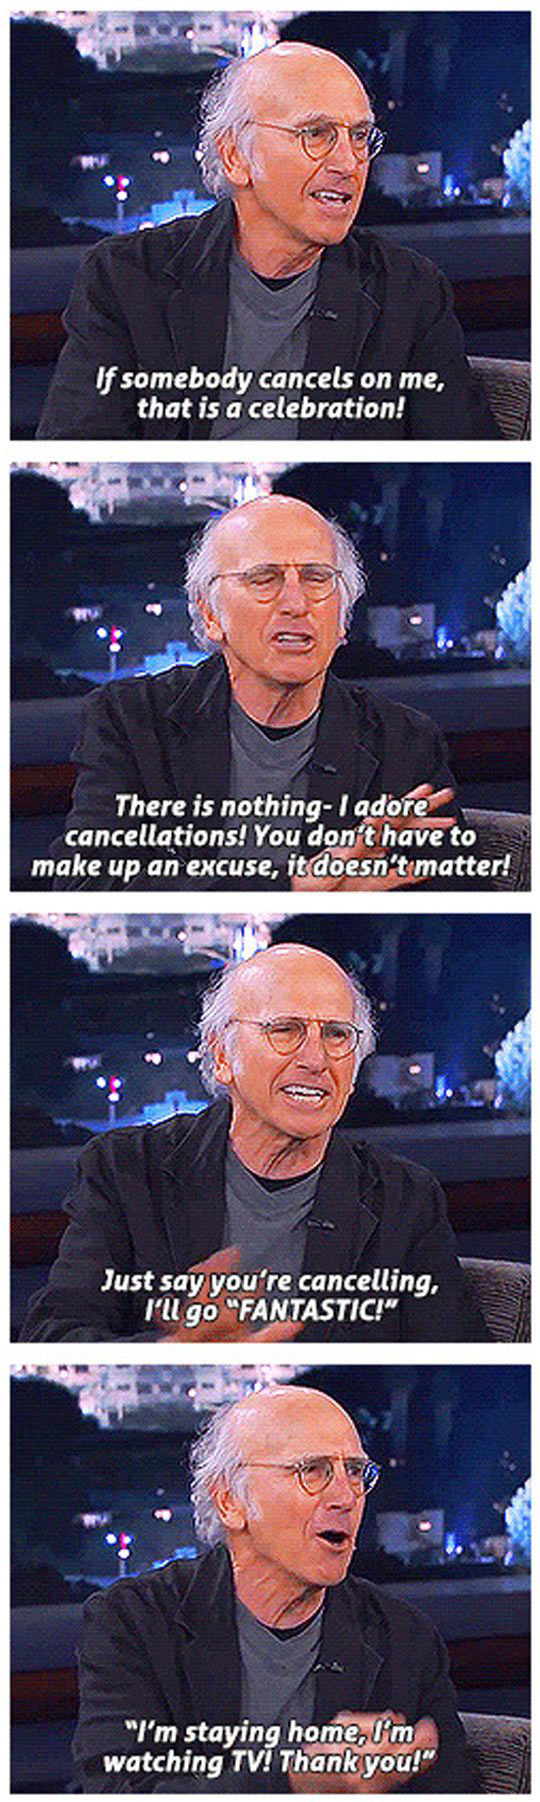 How Larry David Deals With Cancellations